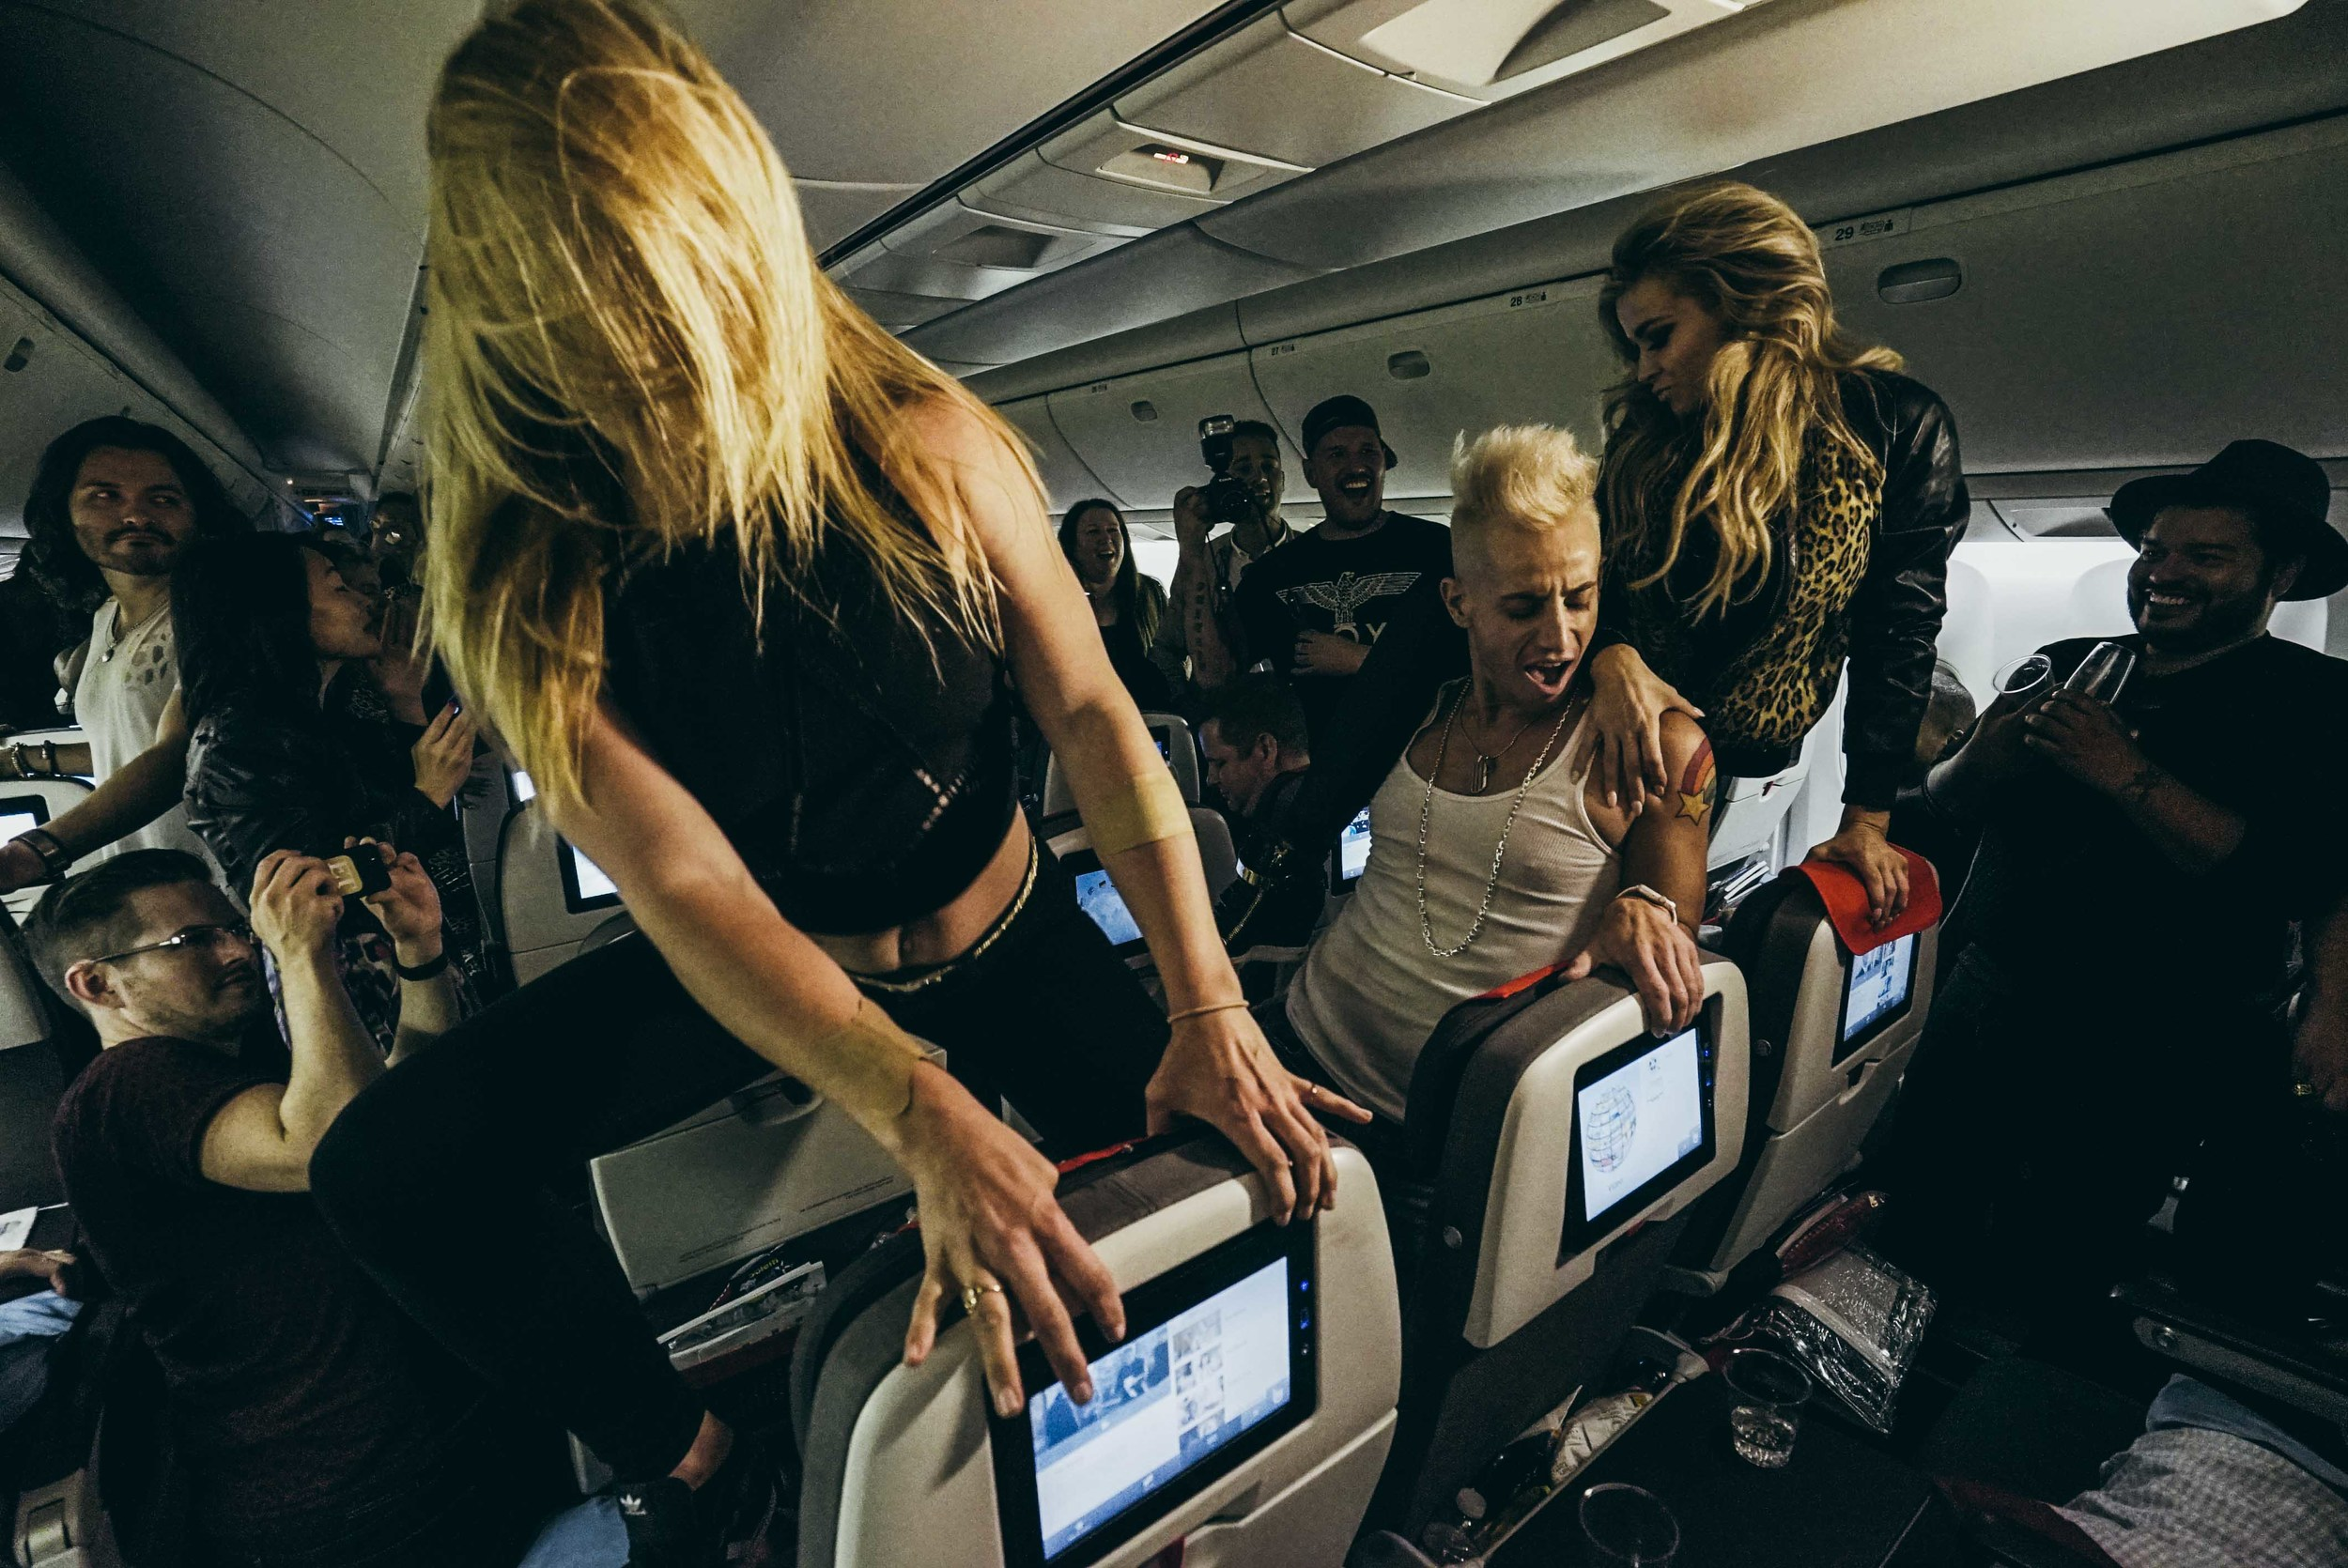 Carmen Electra dances with Frankie Grande and friend on the Austrian Airlines plane to Vienna.